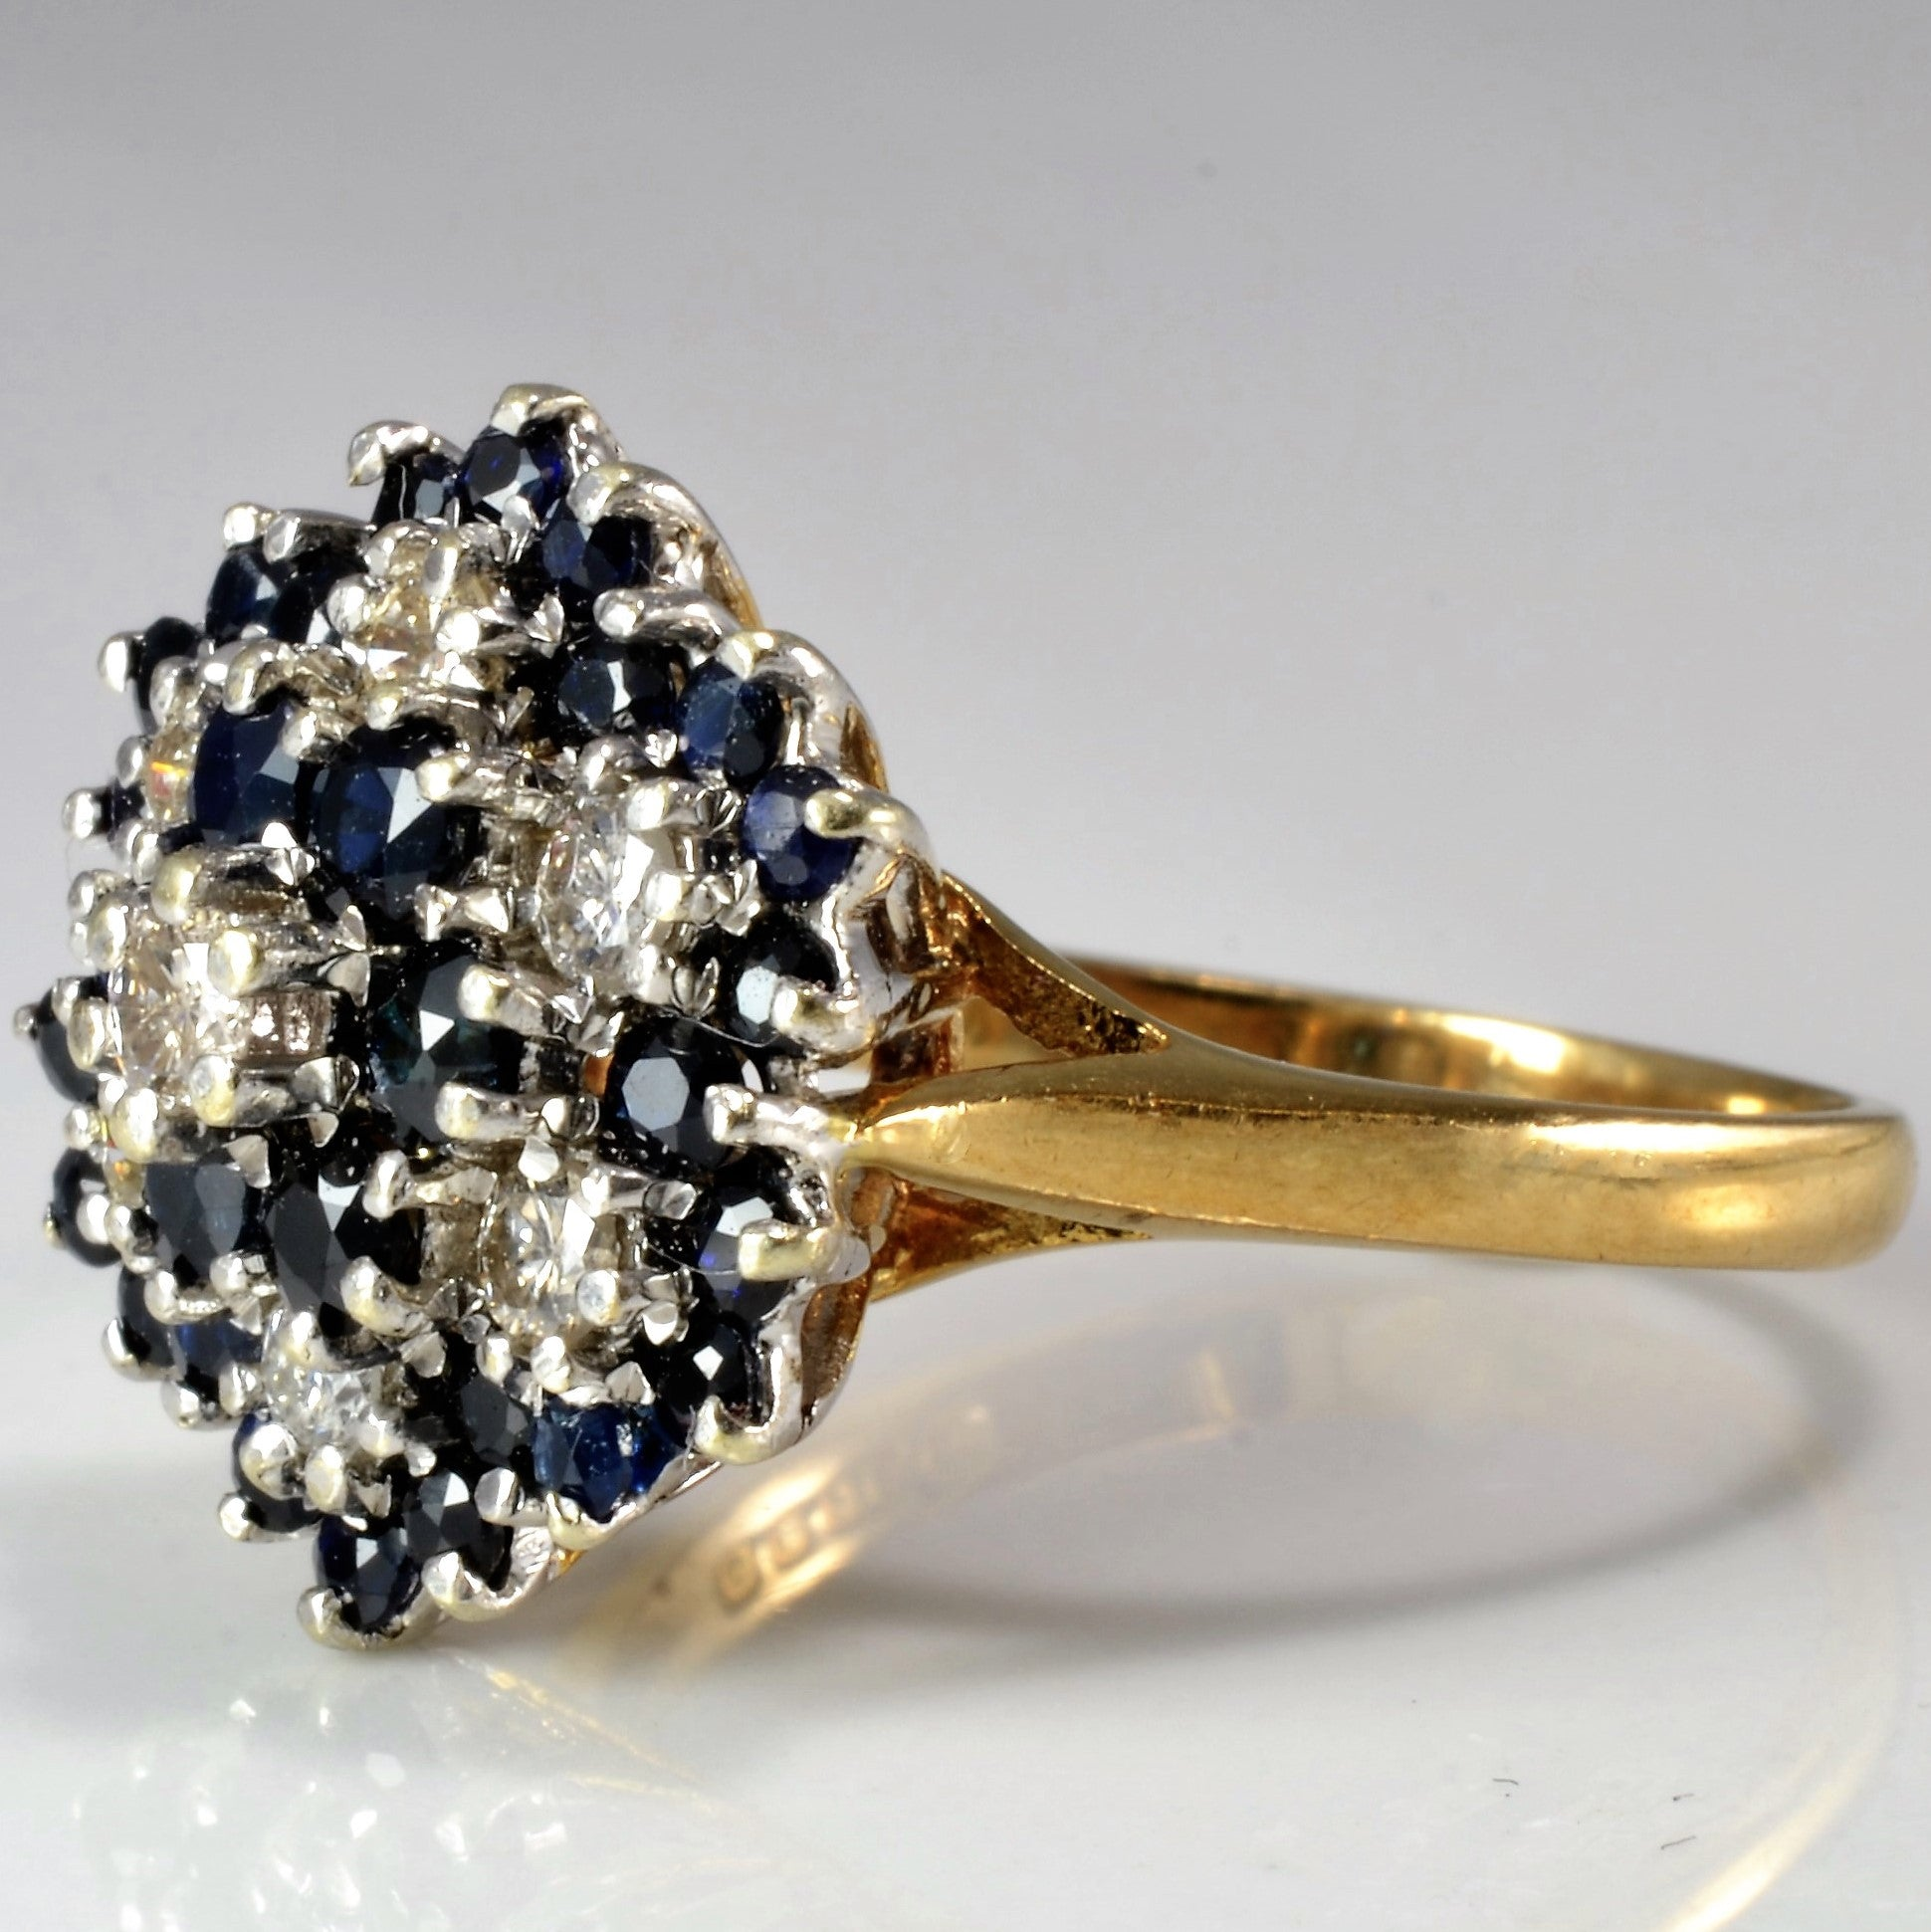 Beautiful Floral Sapphire & Diamond Cocktail Ring | 0.37 ctw, SZ 7.5 |